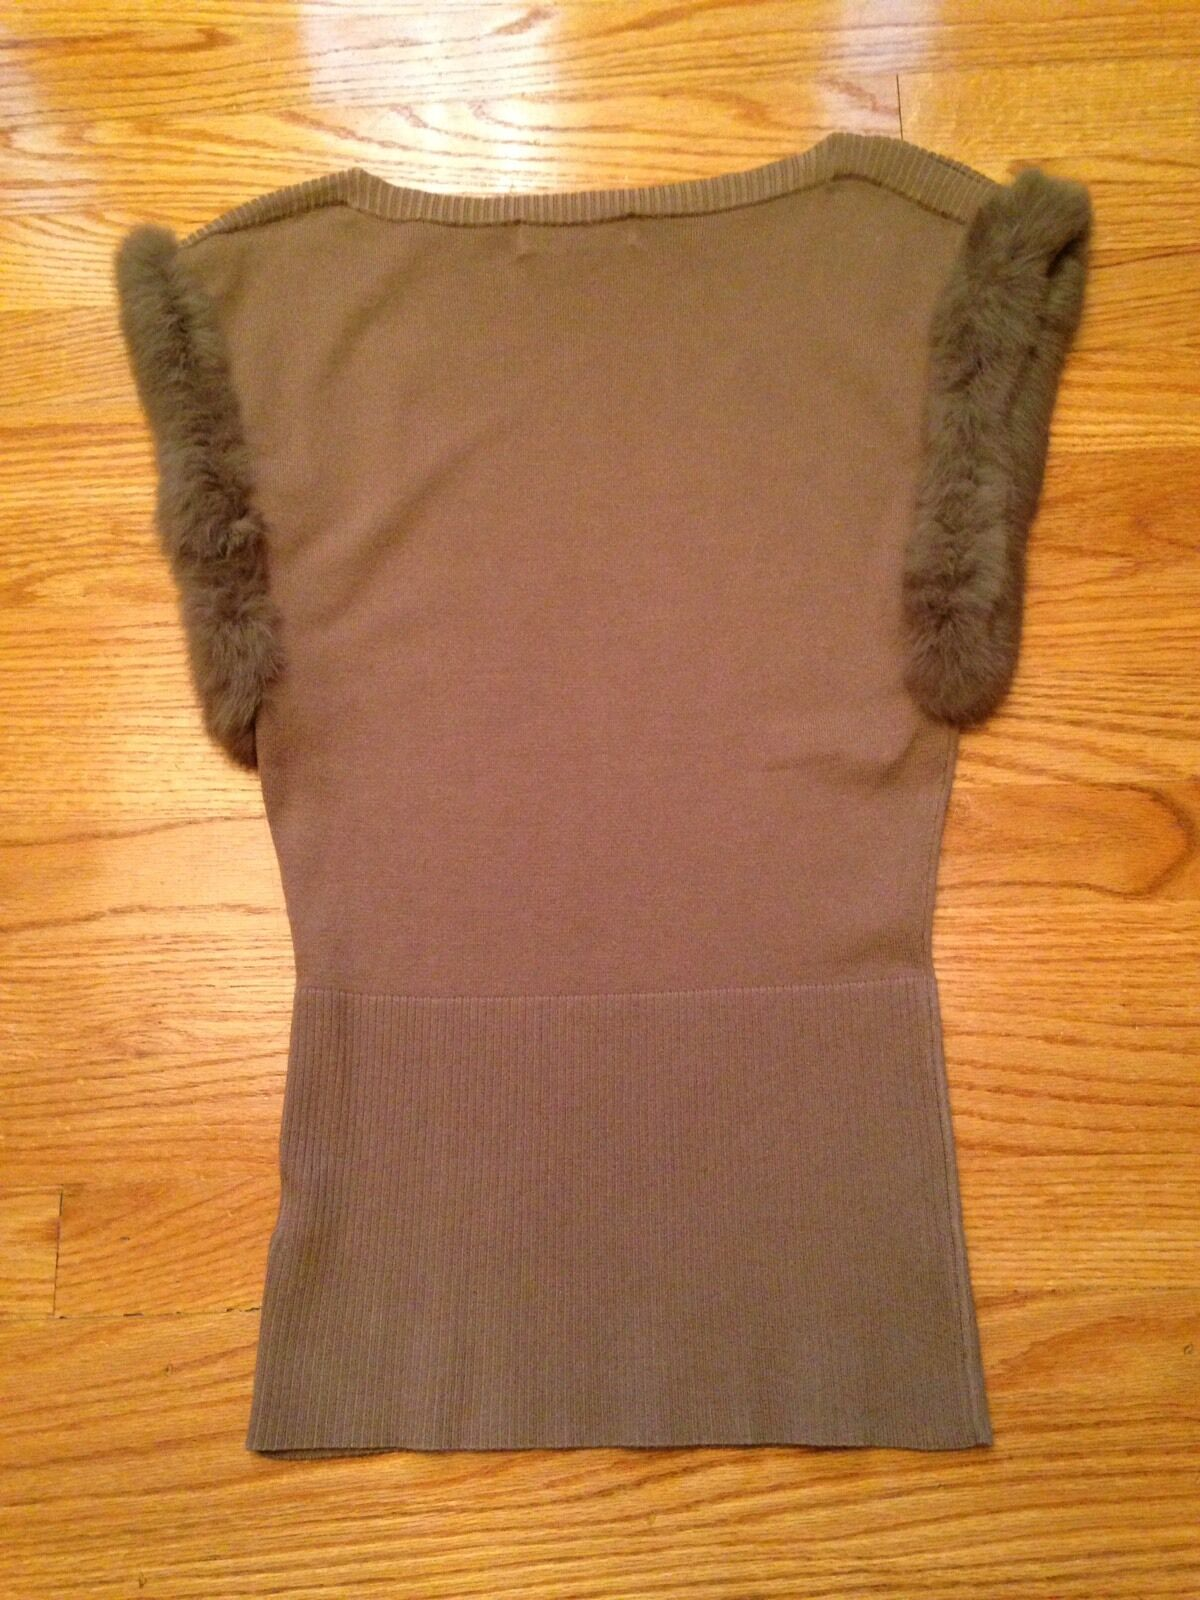 One 7 Six Lite braun  Sleeveless Top Trimmed In Faux Fur Größe S M